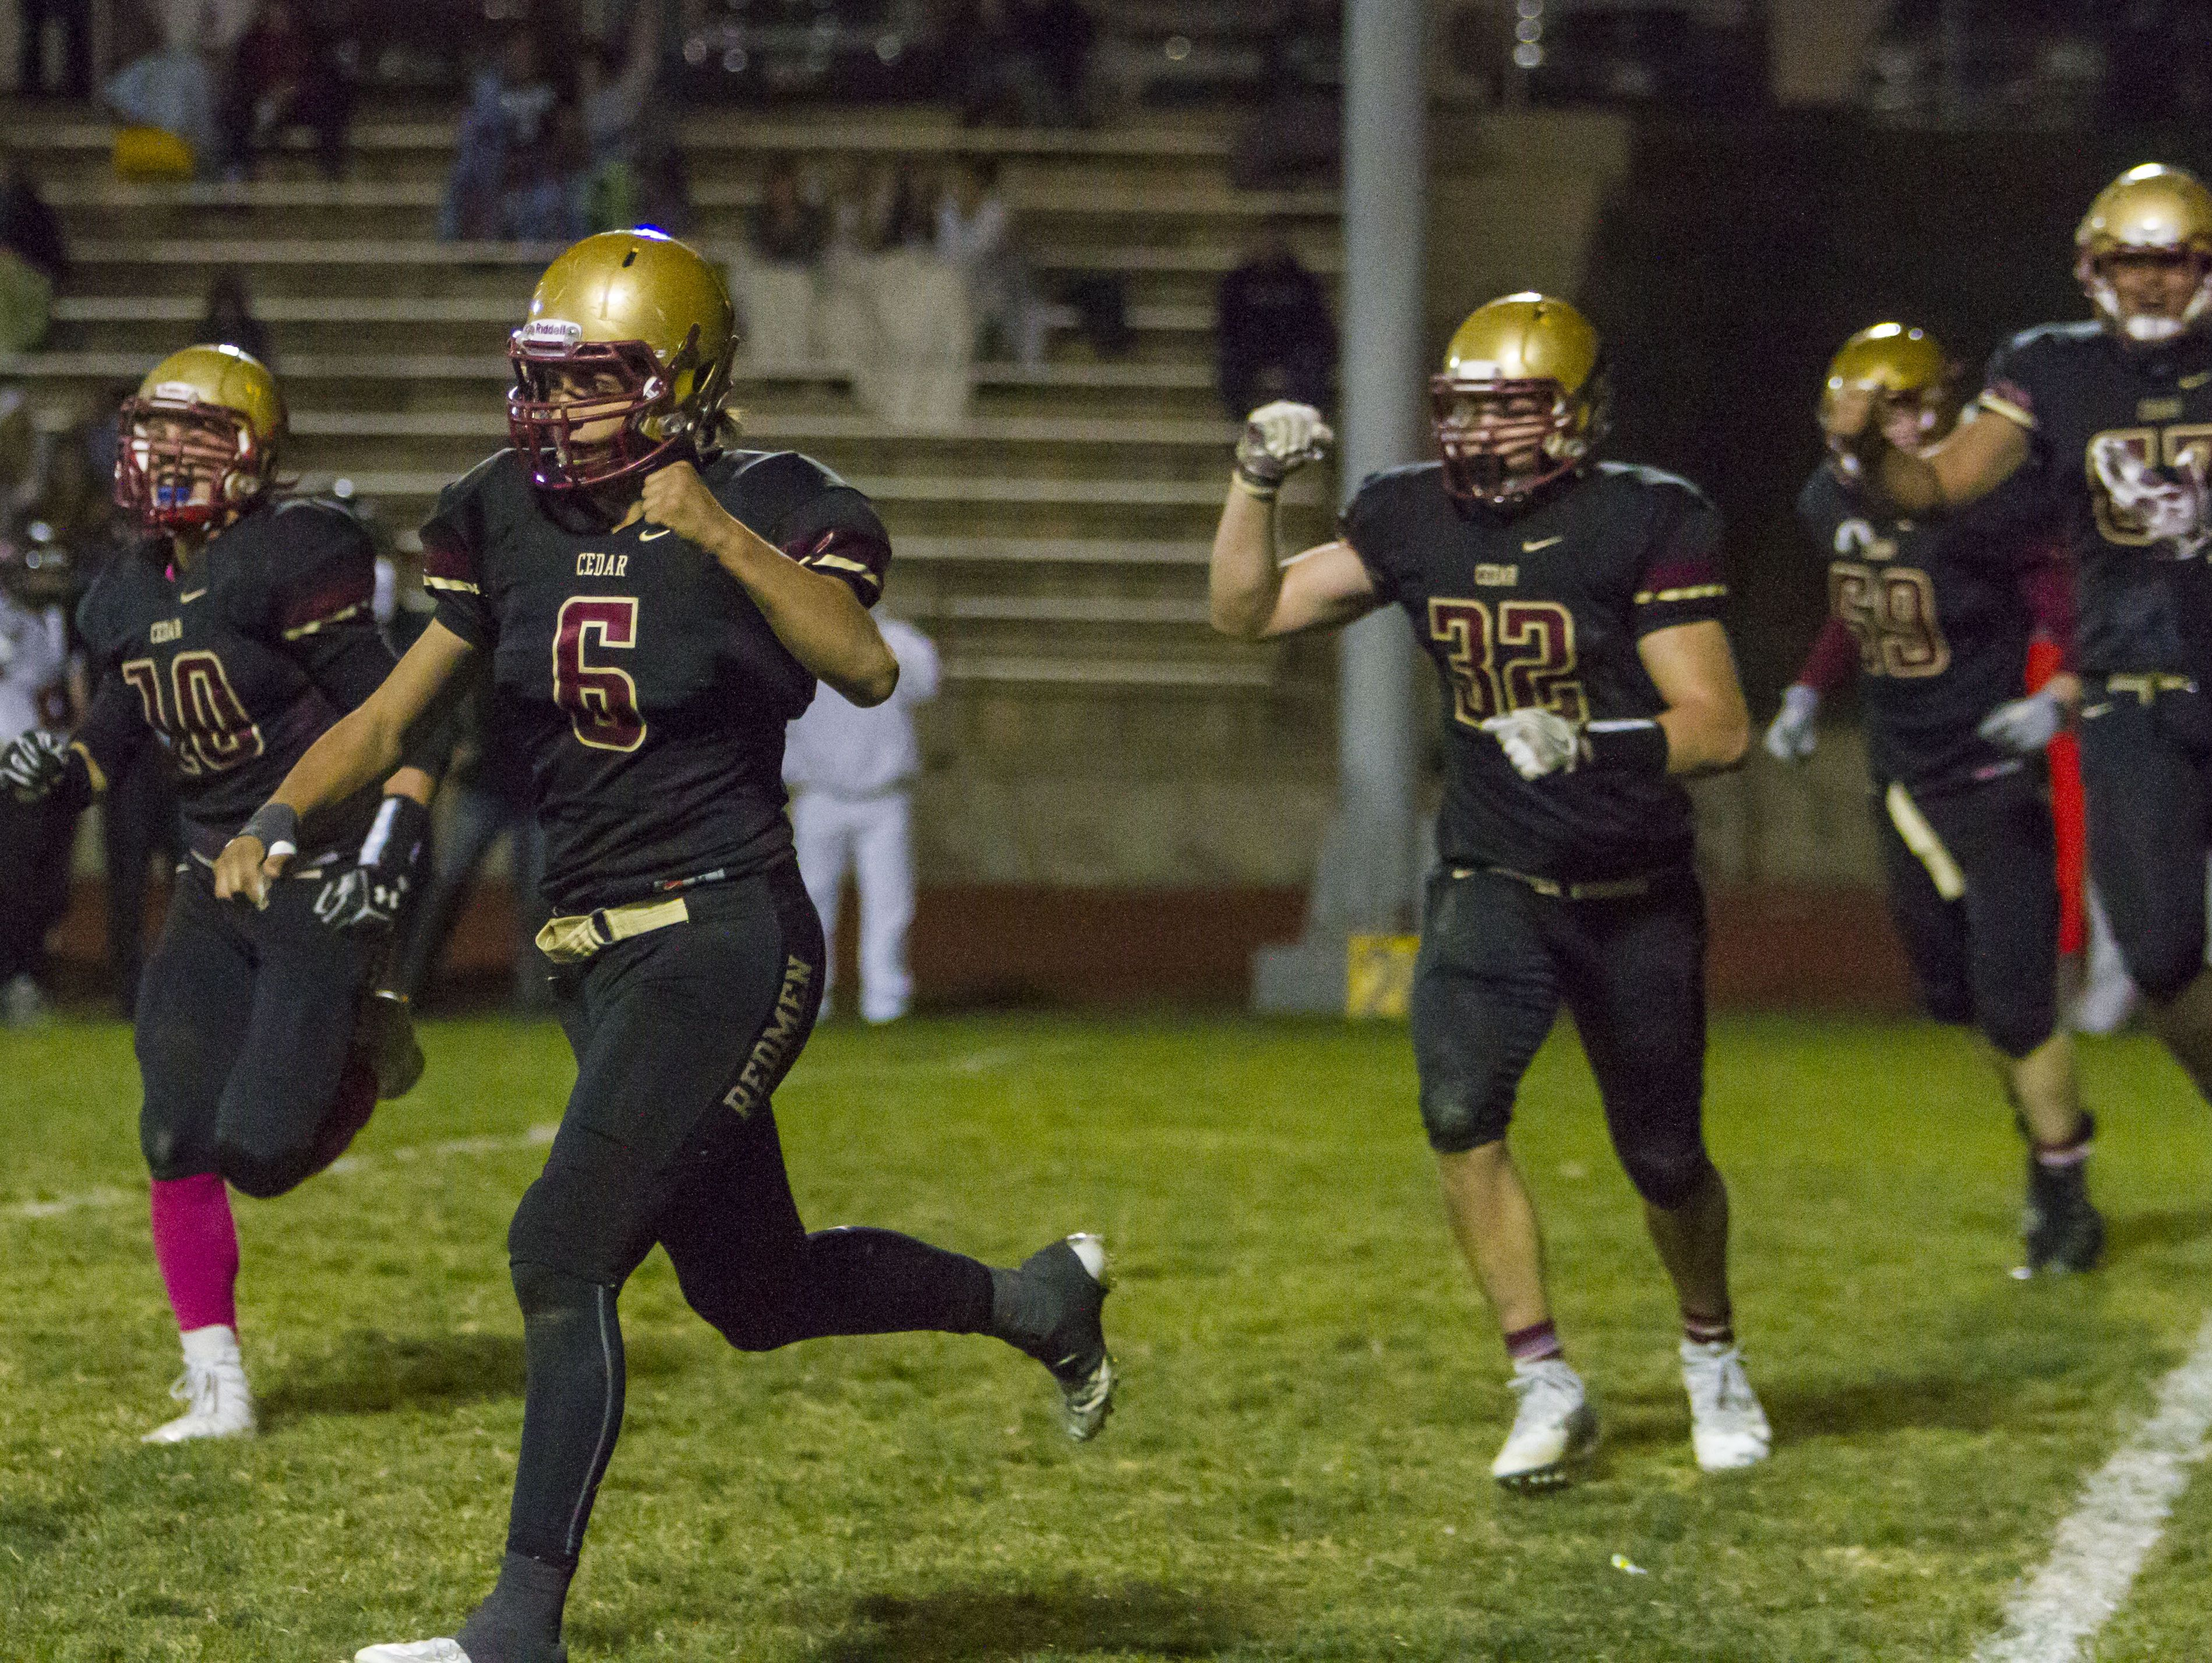 Cedar's defense celebrates getting a safety during the fourth quarter of Friday's game against Hurricane in Cedar City, Oct. 7, 2016.